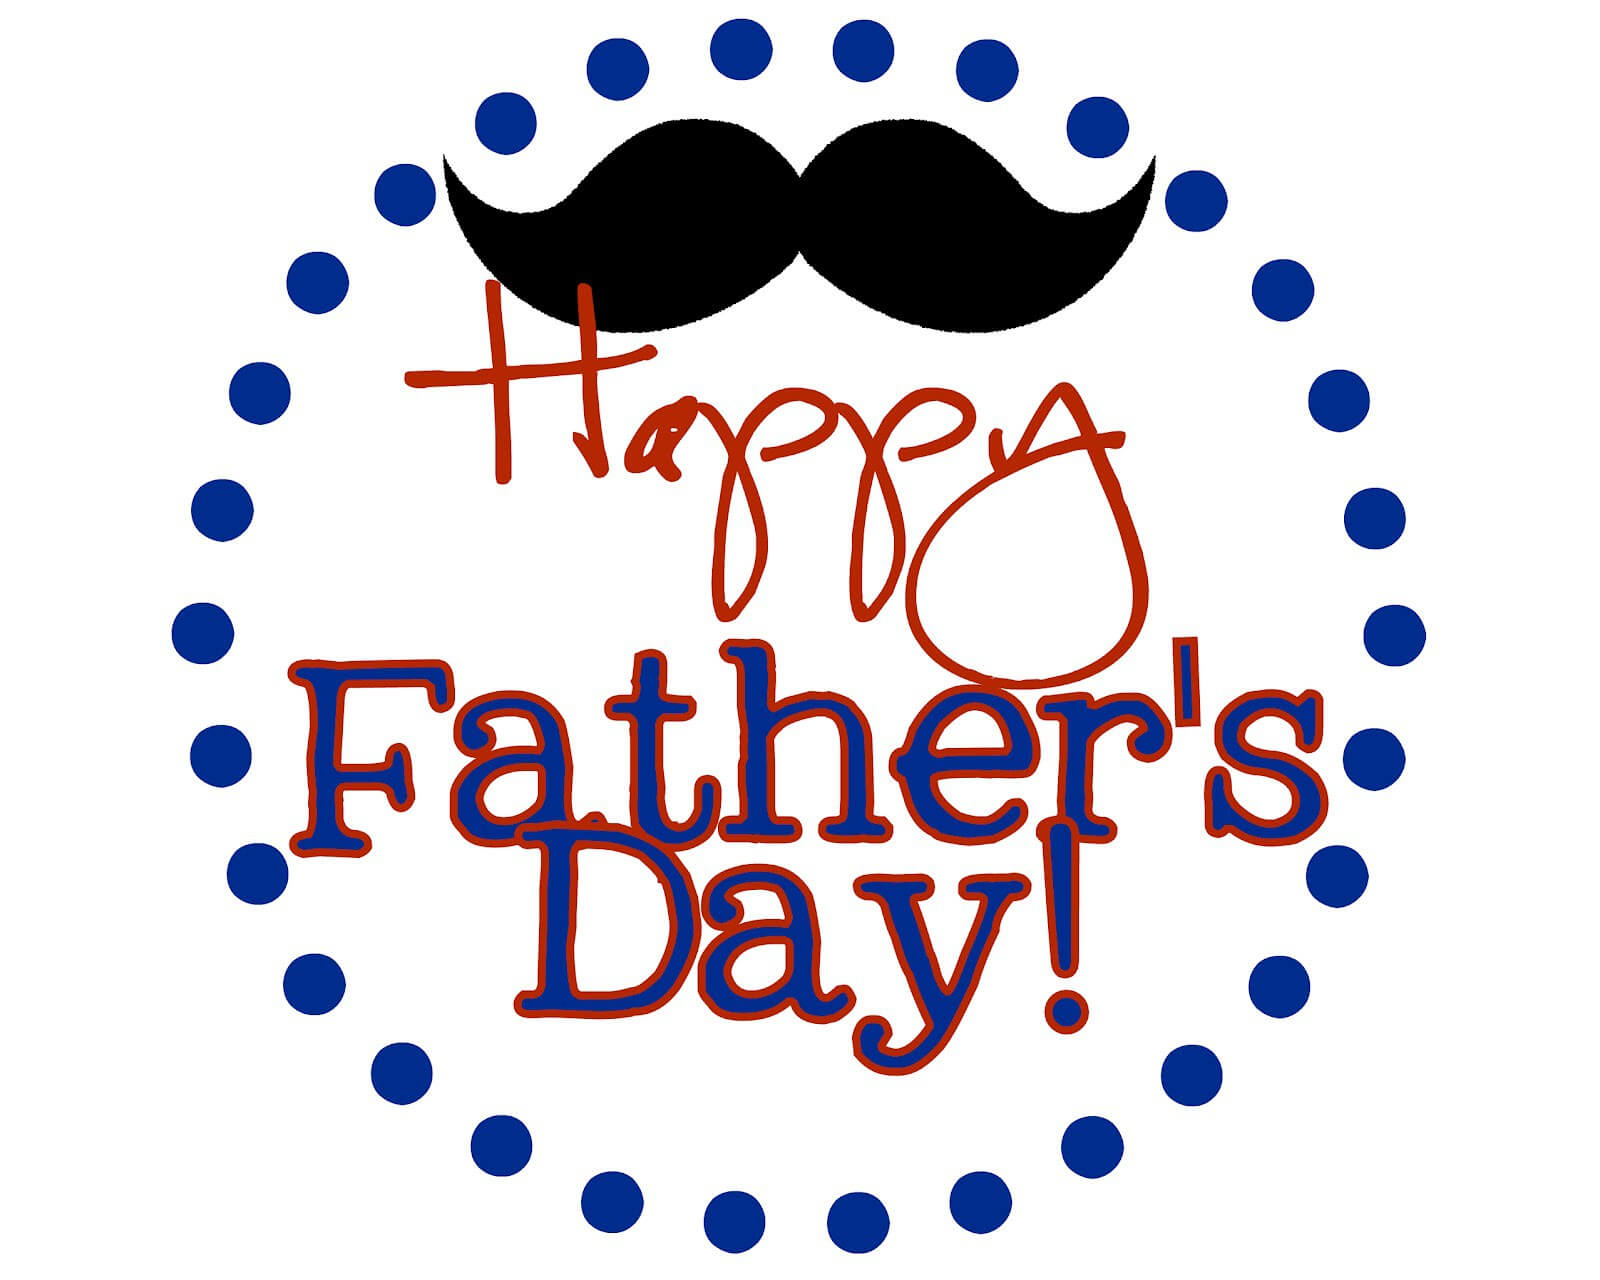 happy fathers day mustache wallpaper